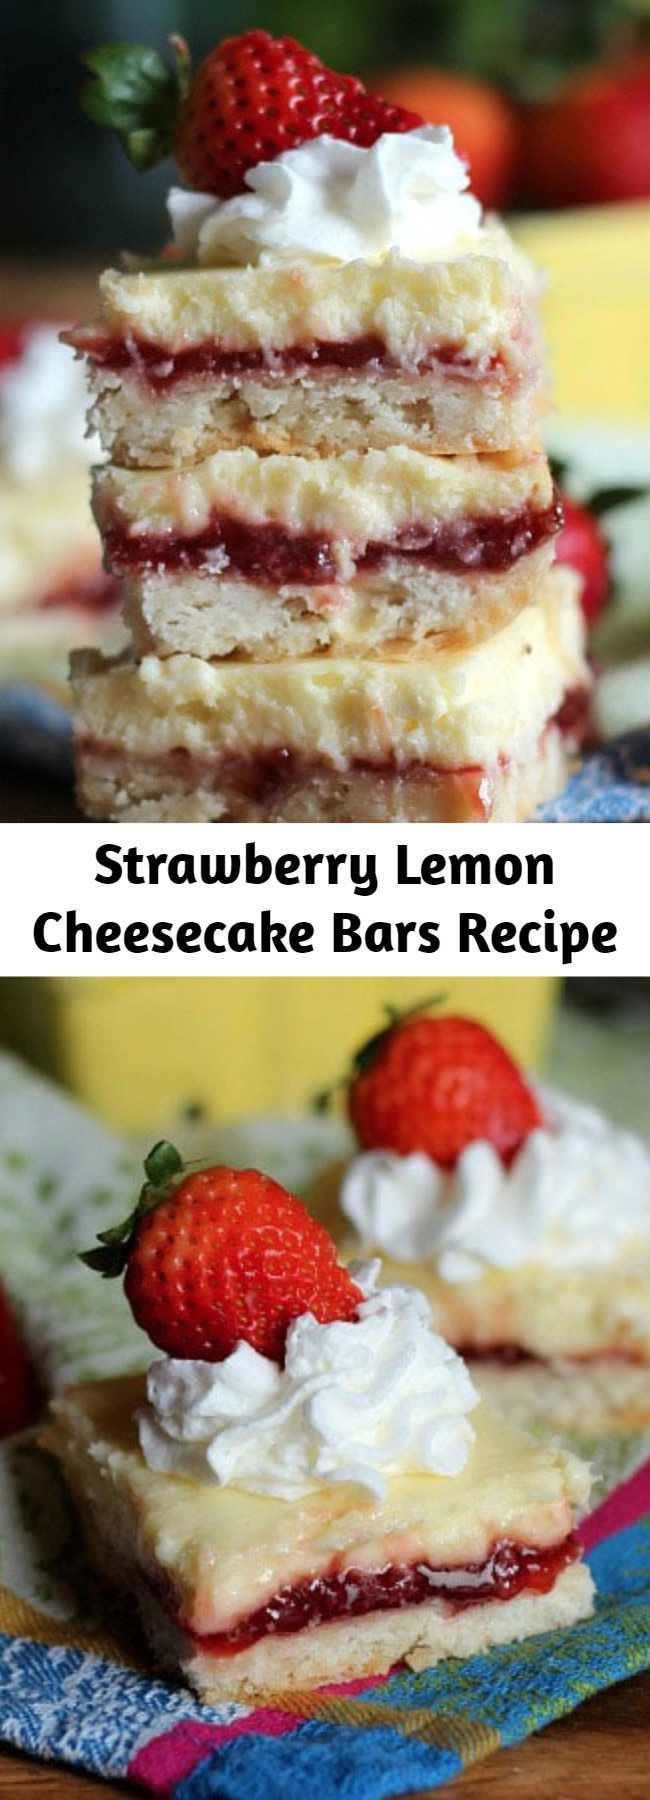 Strawberry Lemon Cheesecake Bars Recipe - Thick buttery graham cracker crust topped with lemon strawberry-swirled filling to make these delicious Strawberry Lemon Cheesecake Bars! Chill them for a tasty summer dessert!